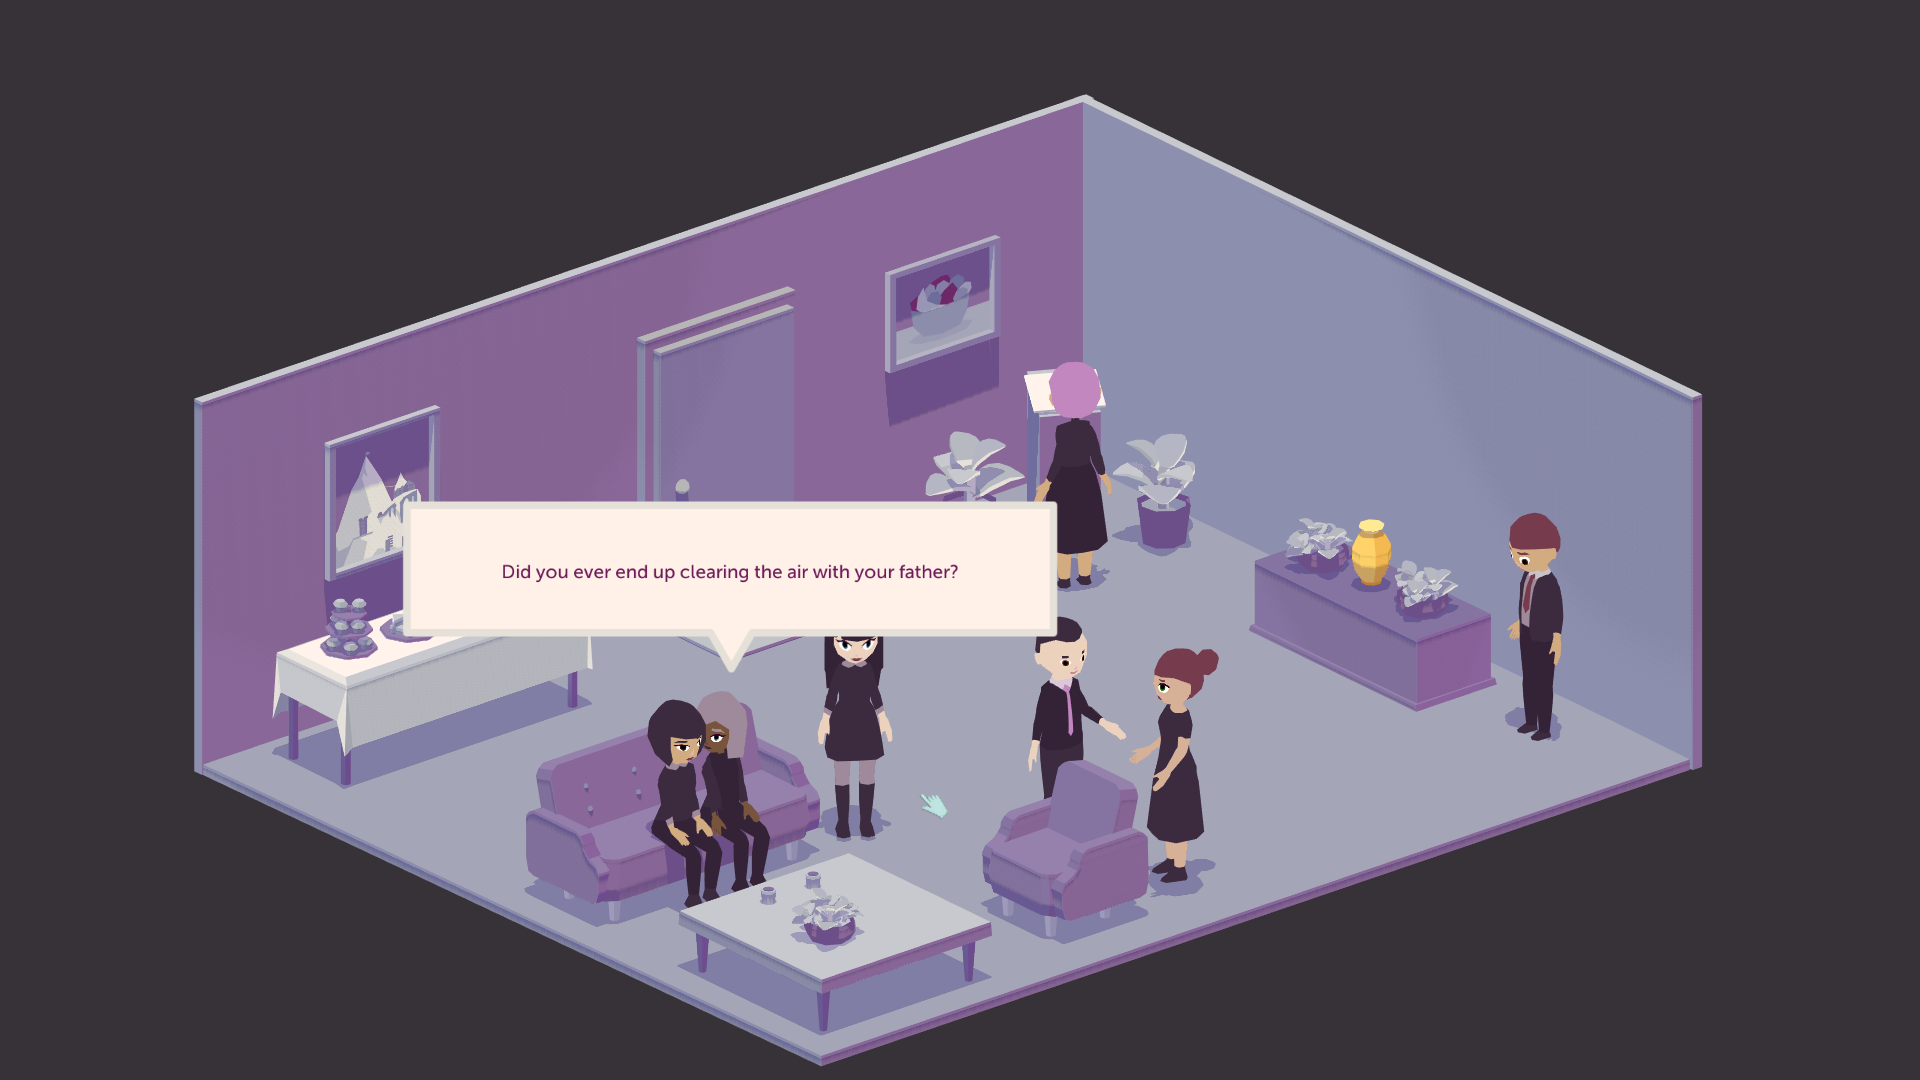 People are milling in a room. Two feminine characters are sitting on a couch. There is a speech bubble showing one saying to the other 'Did you ever end up clearing the air with your father?'